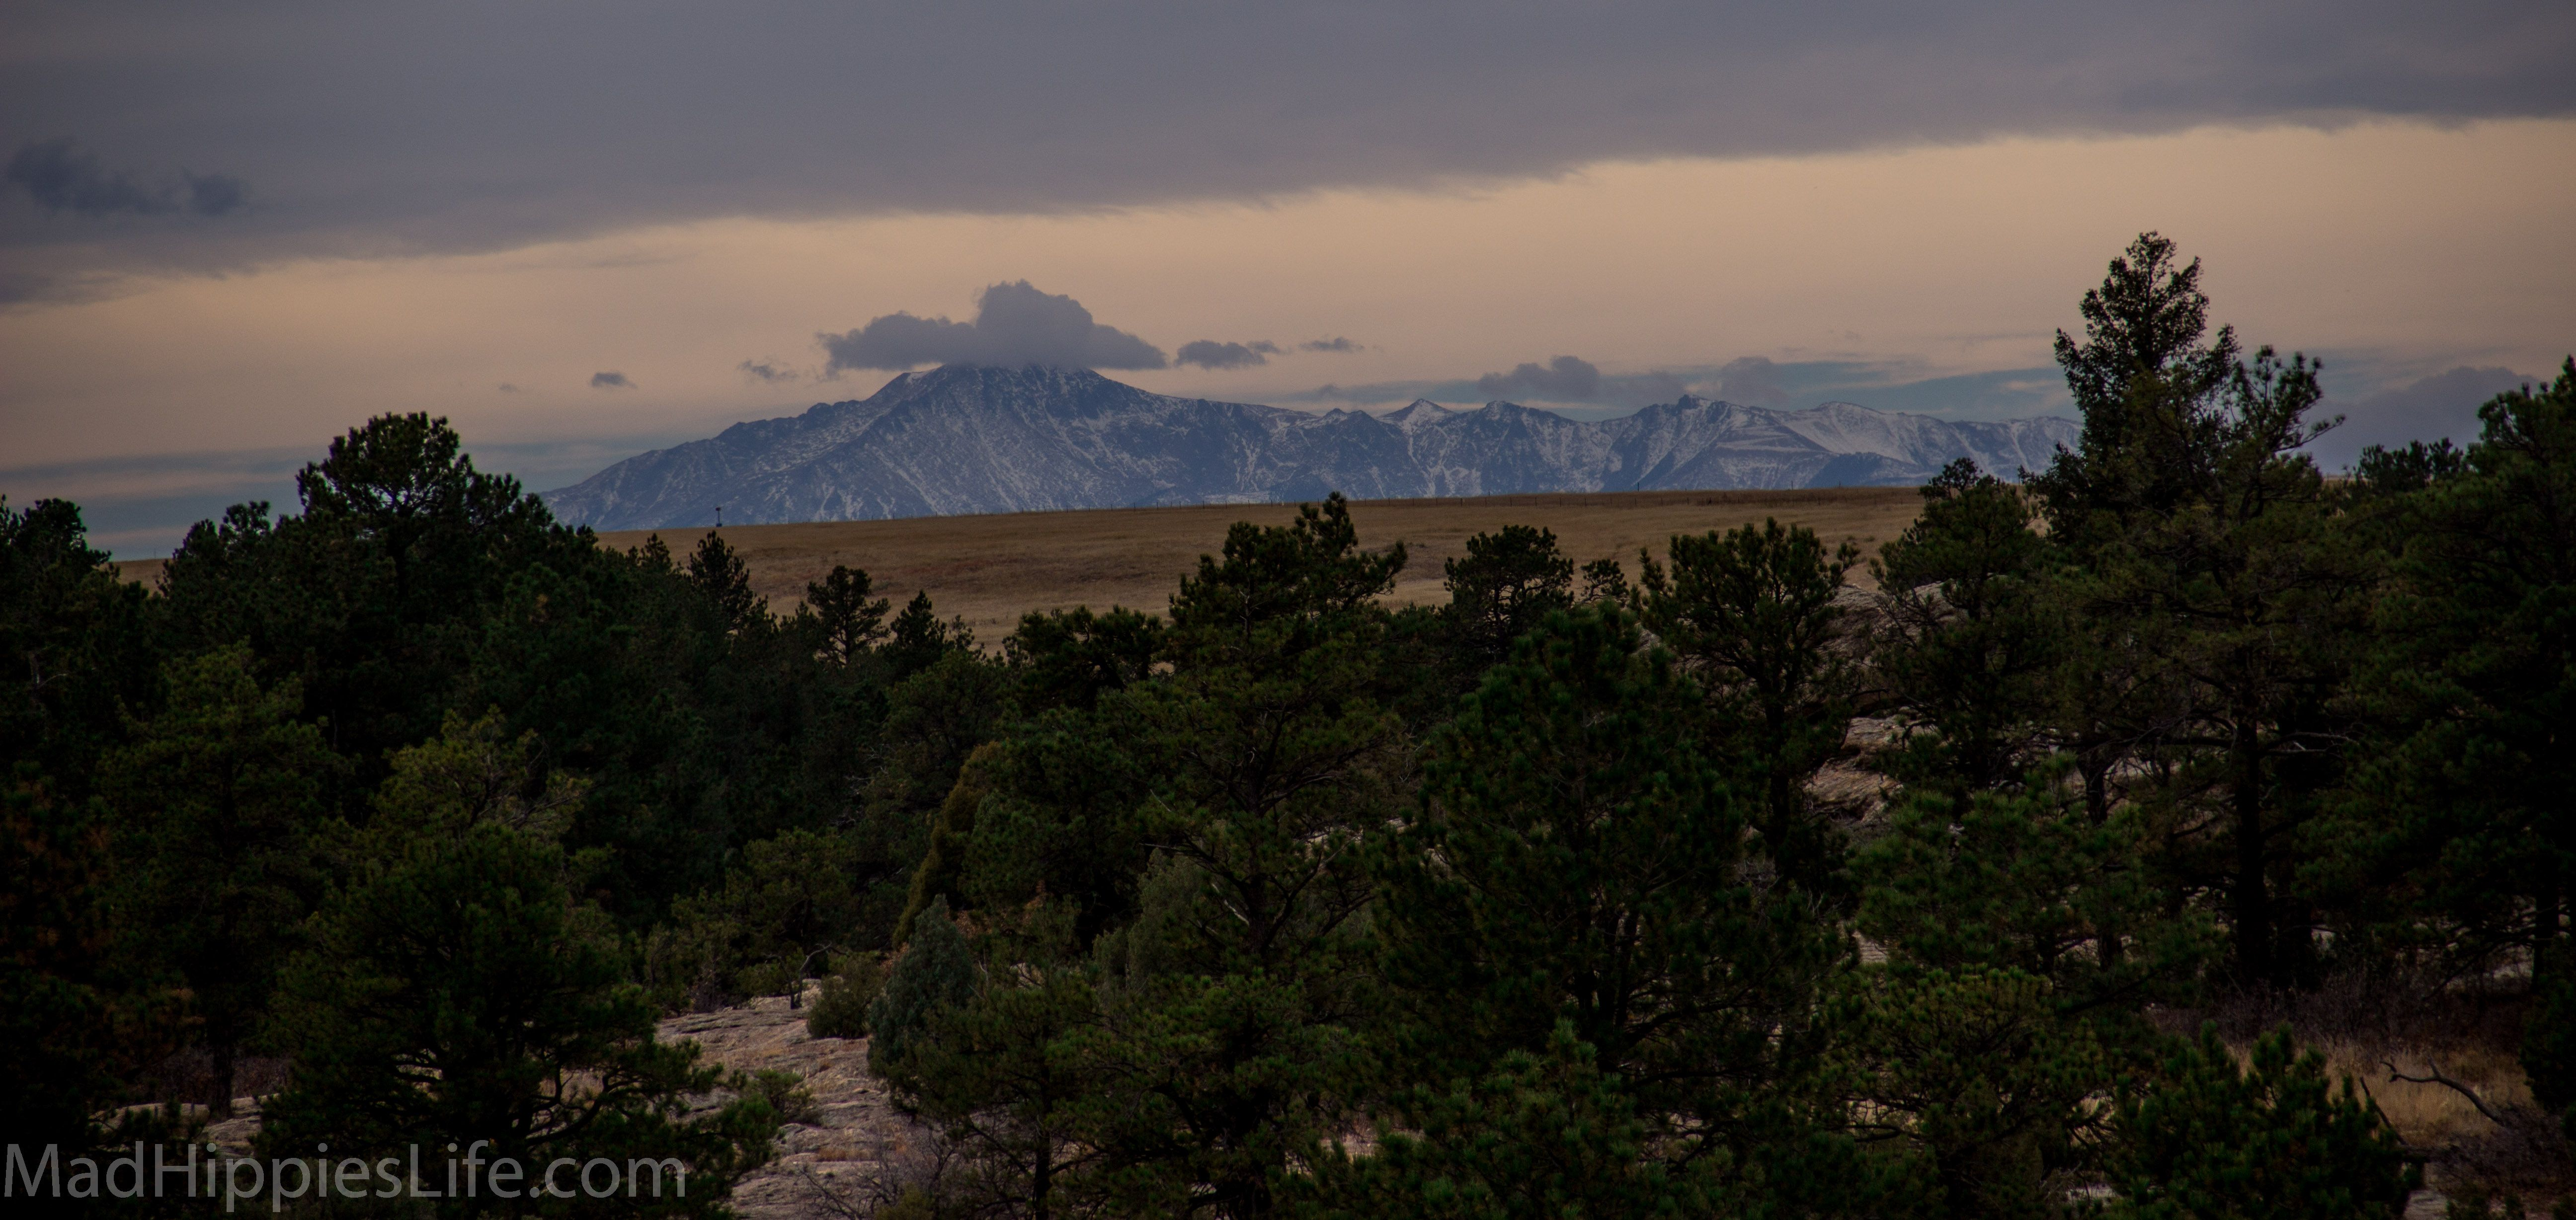 Views of Pikes Peak along the East Canyon trail